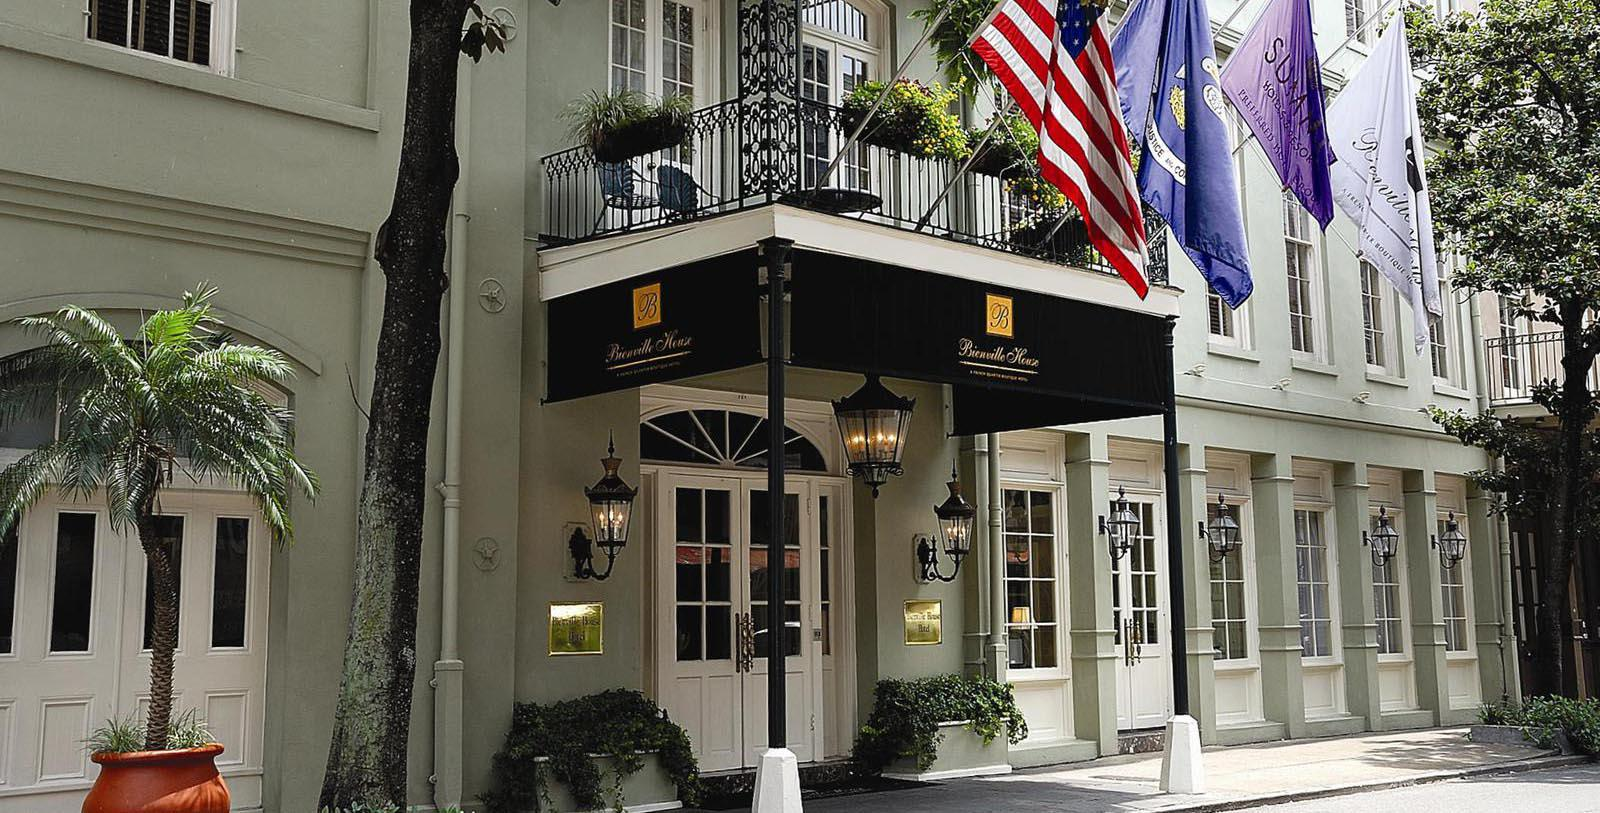 Image of hotel exterior and entryway at Bienville House, 1835, Member of Historic Hotels of America, in New Orleans, Louisiana, Overview